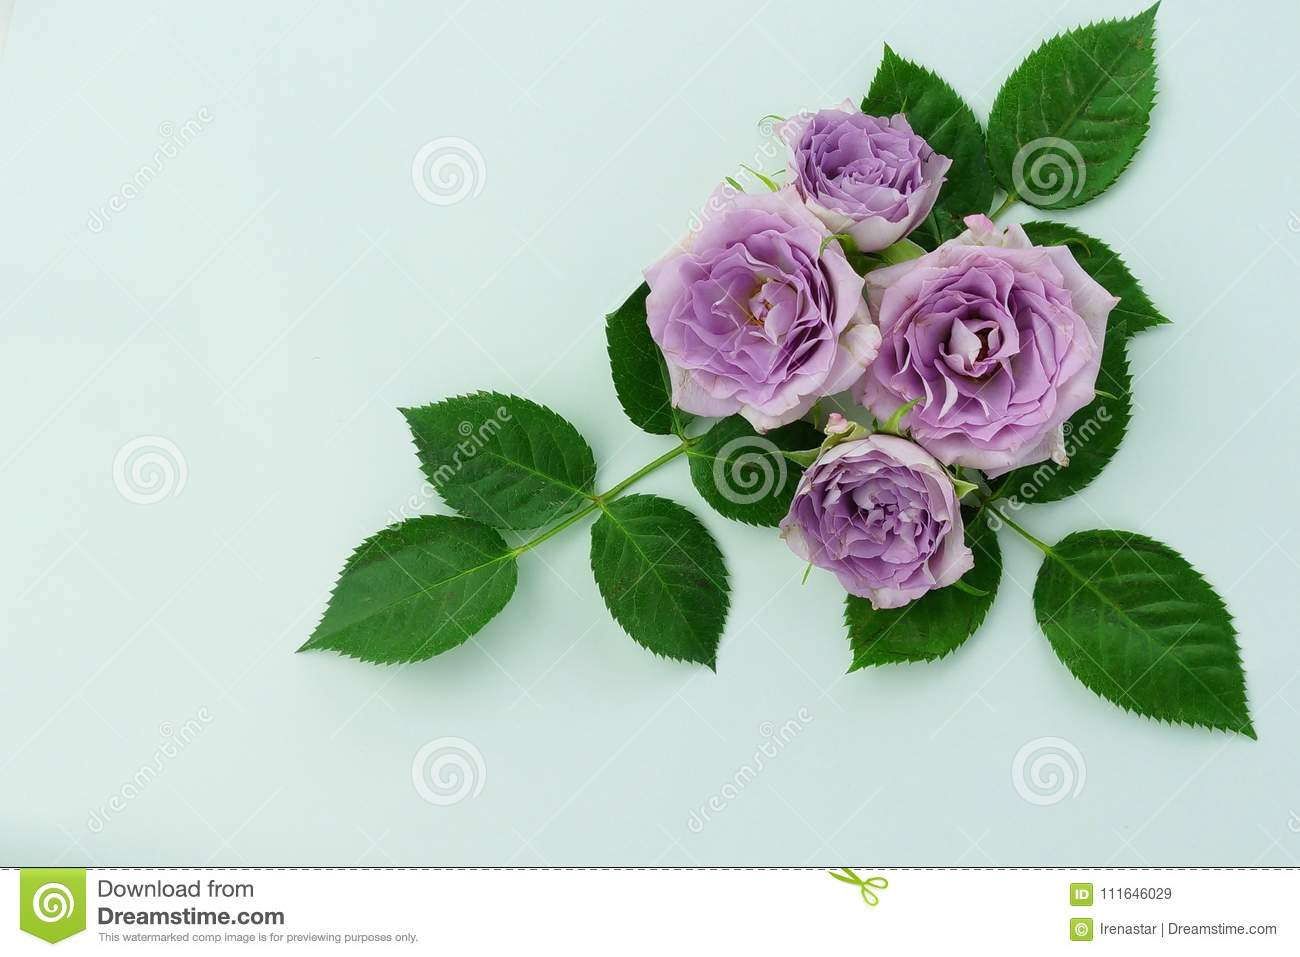 Flowers background beautiful purple roses on a mint color flowers background beautiful purple roses on a mint color background izmirmasajfo